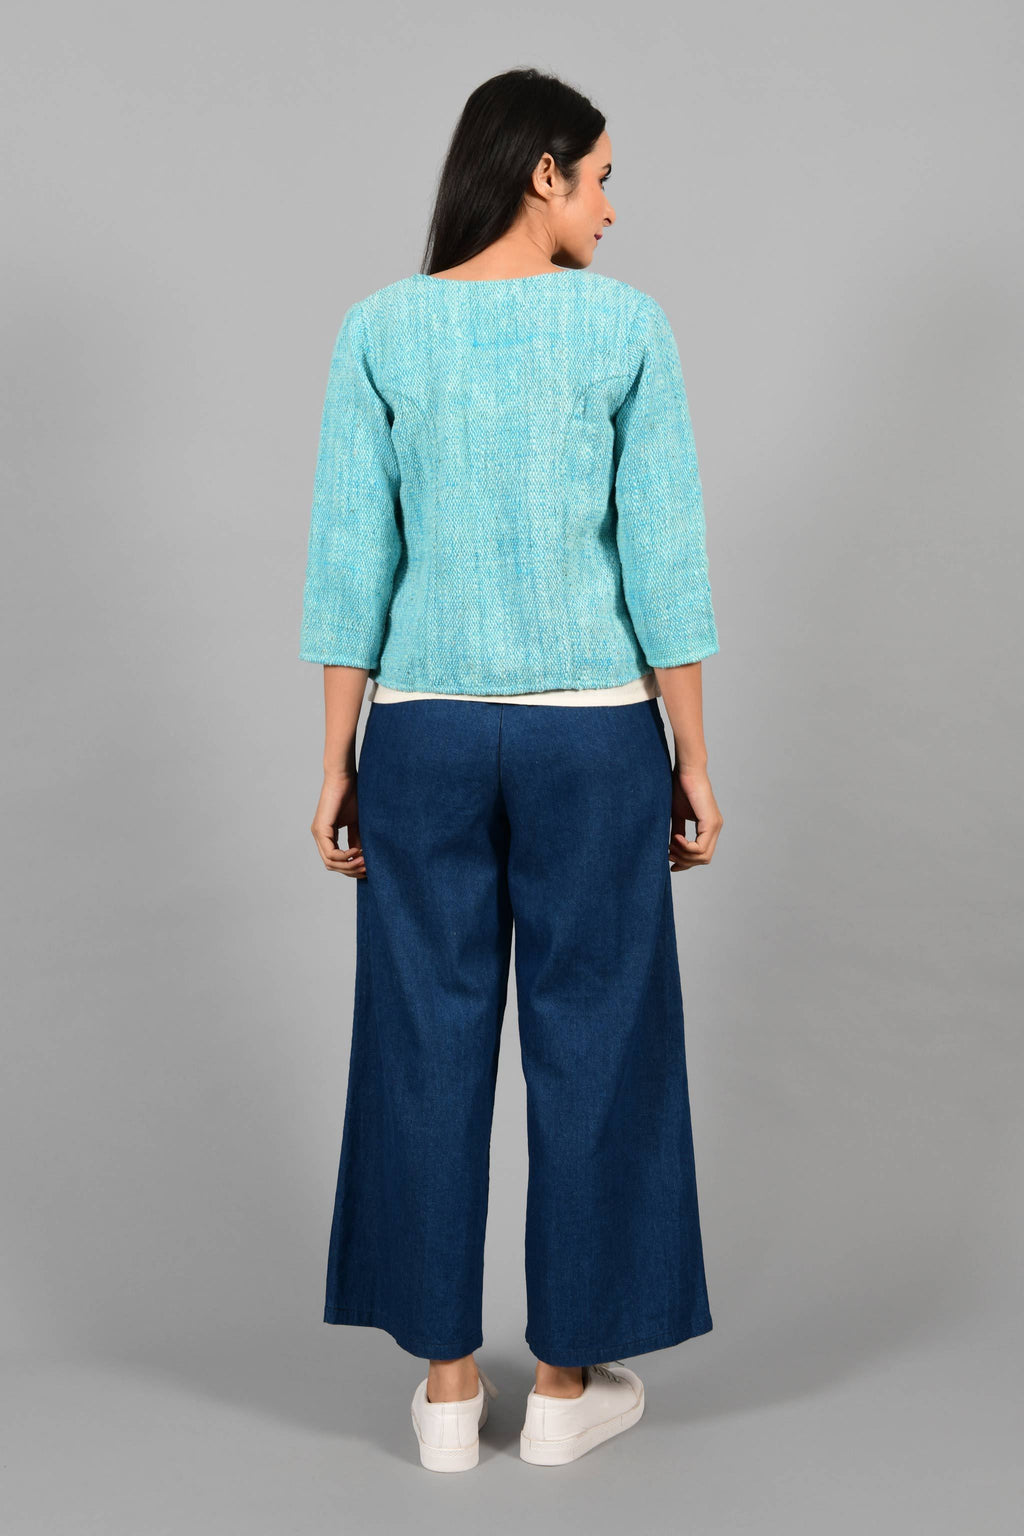 Back pose of an Indian Womenswear female model wearing aqua blue and Gandhi Charkha spun and handwoven khadi Jacket over an off-white spaghetti and indigo palazzos by Cotton Rack.